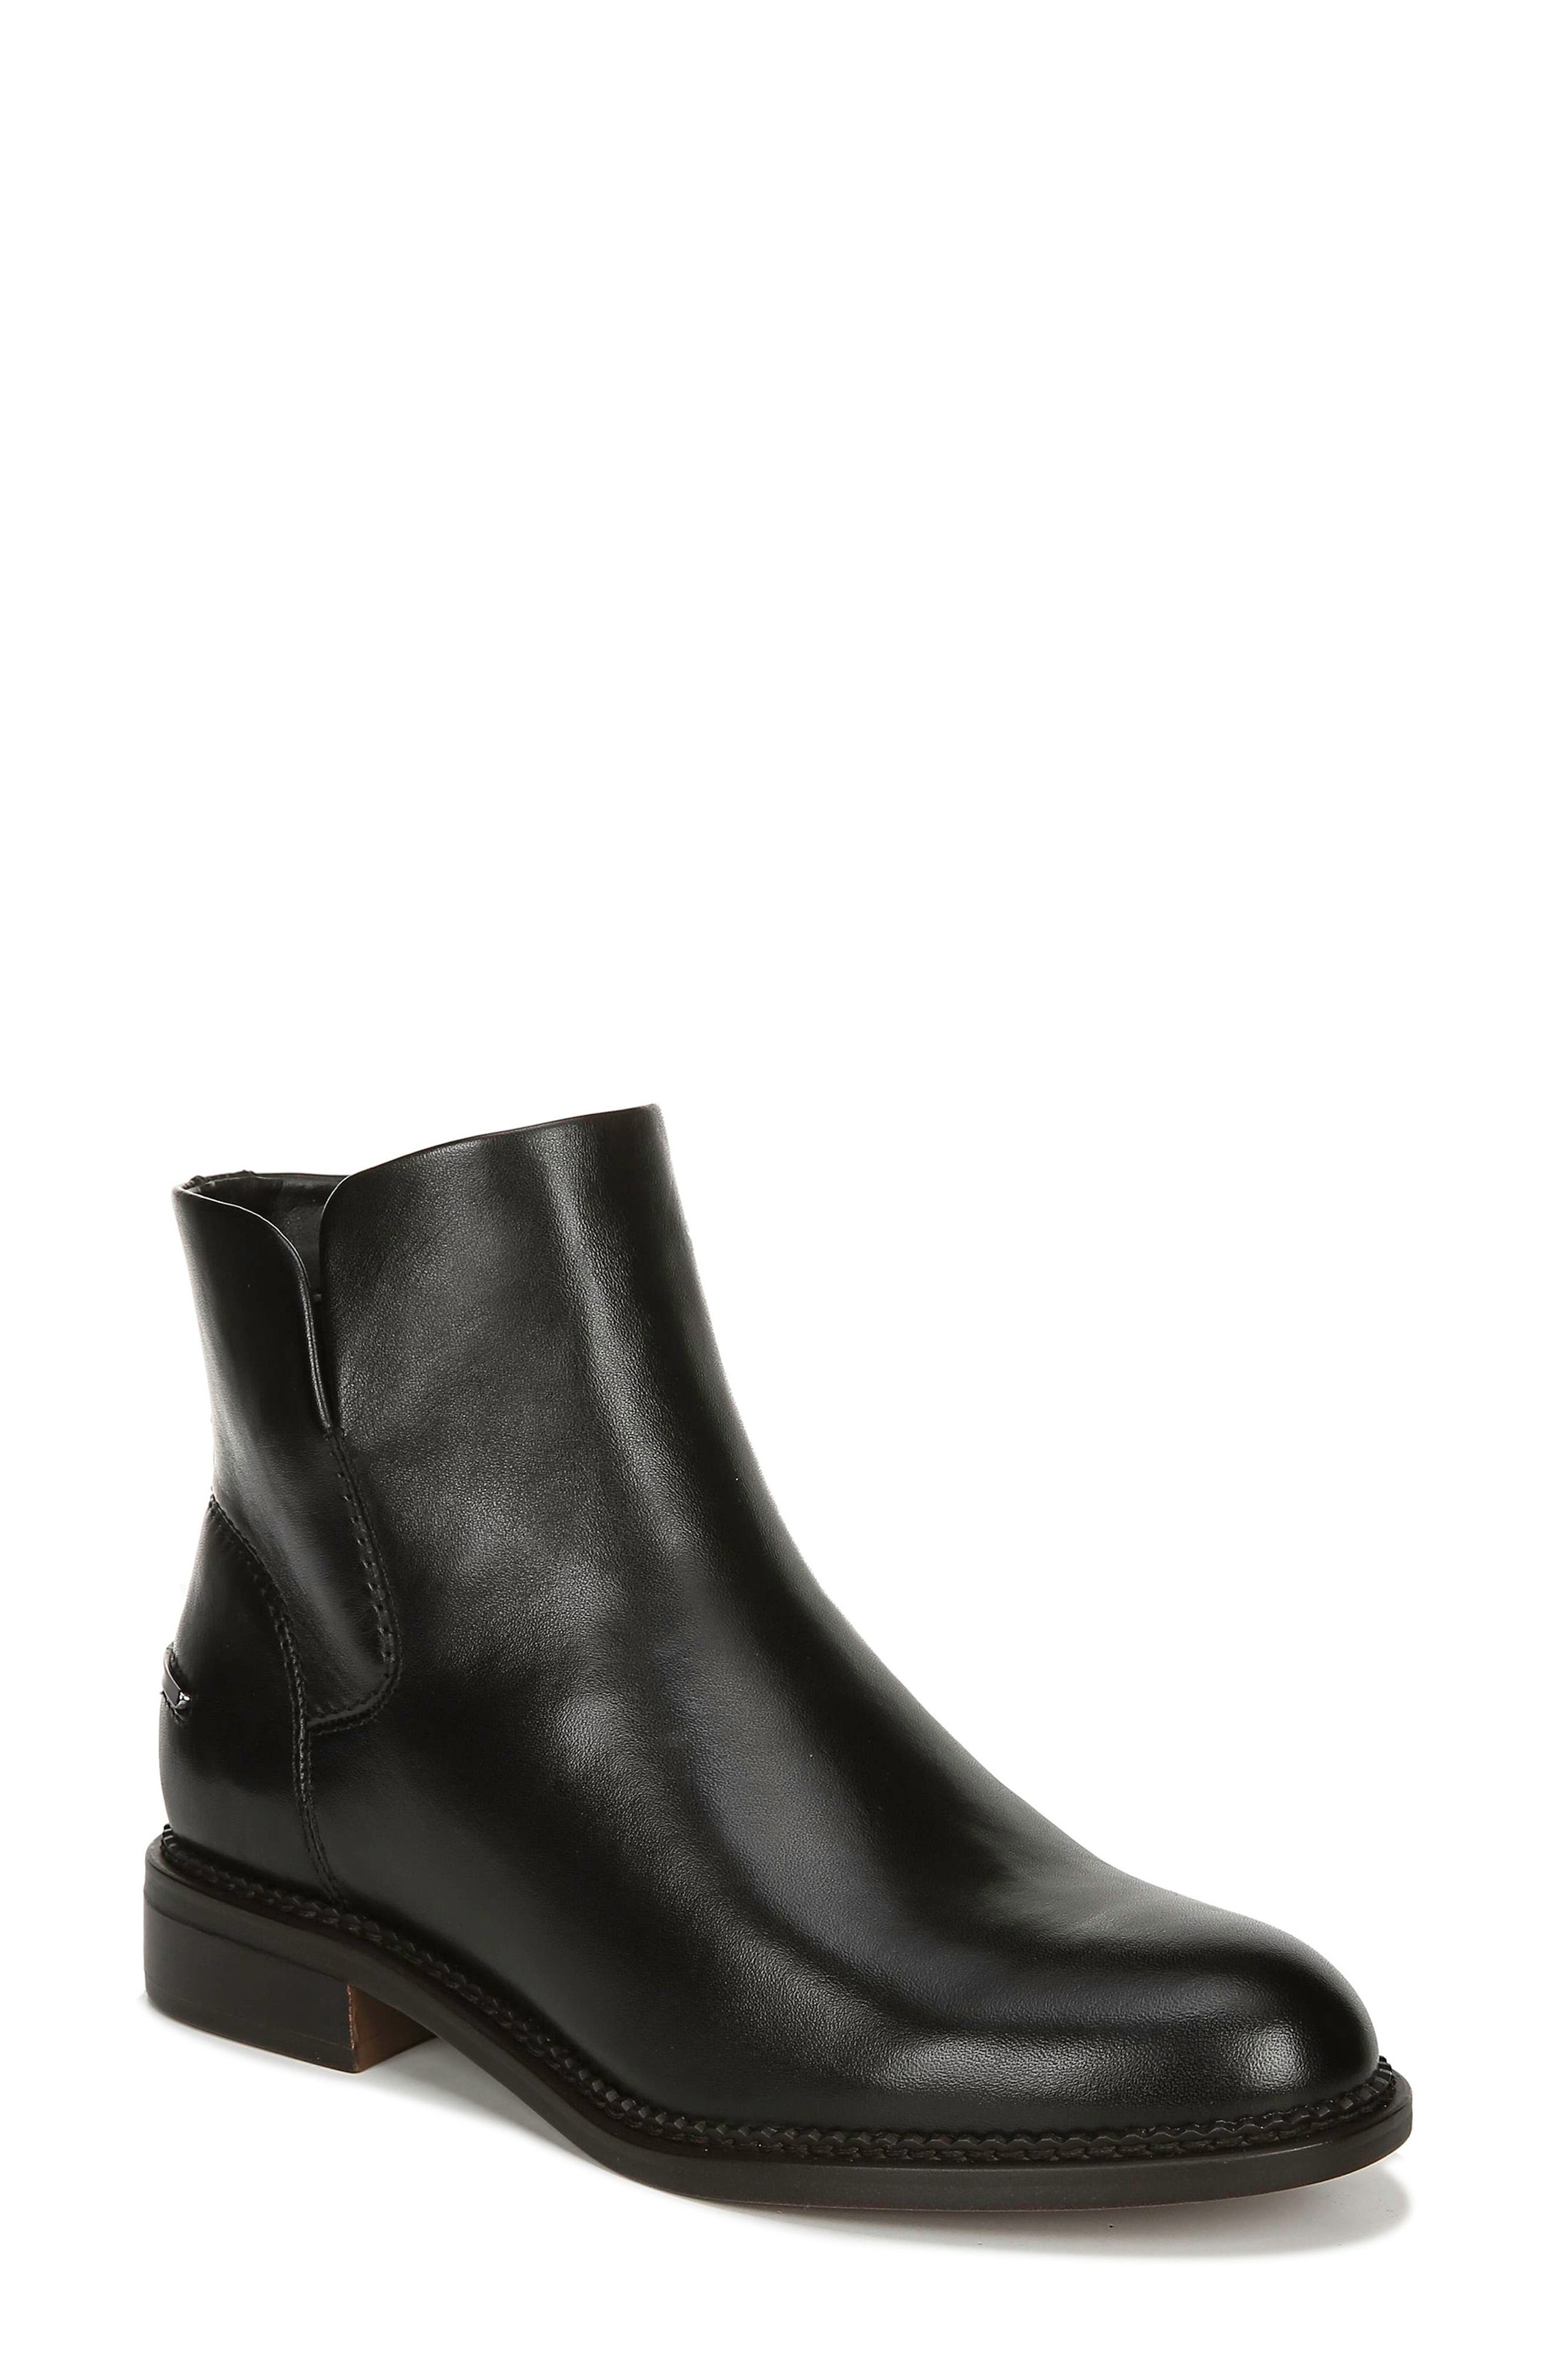 Image of Franco Sarto Happily Leather Ankle Bootie